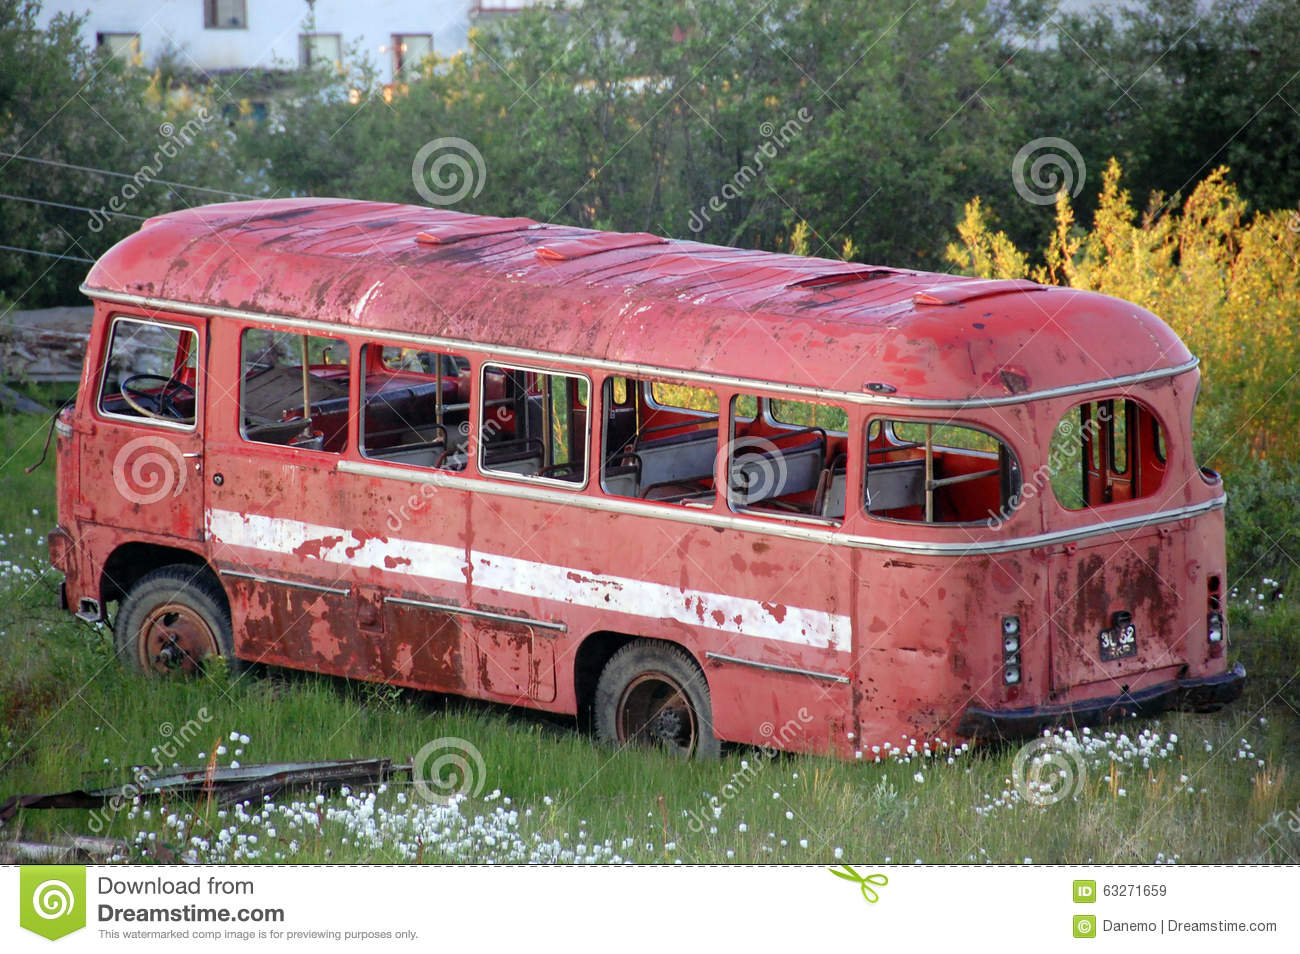 The Broken Bus